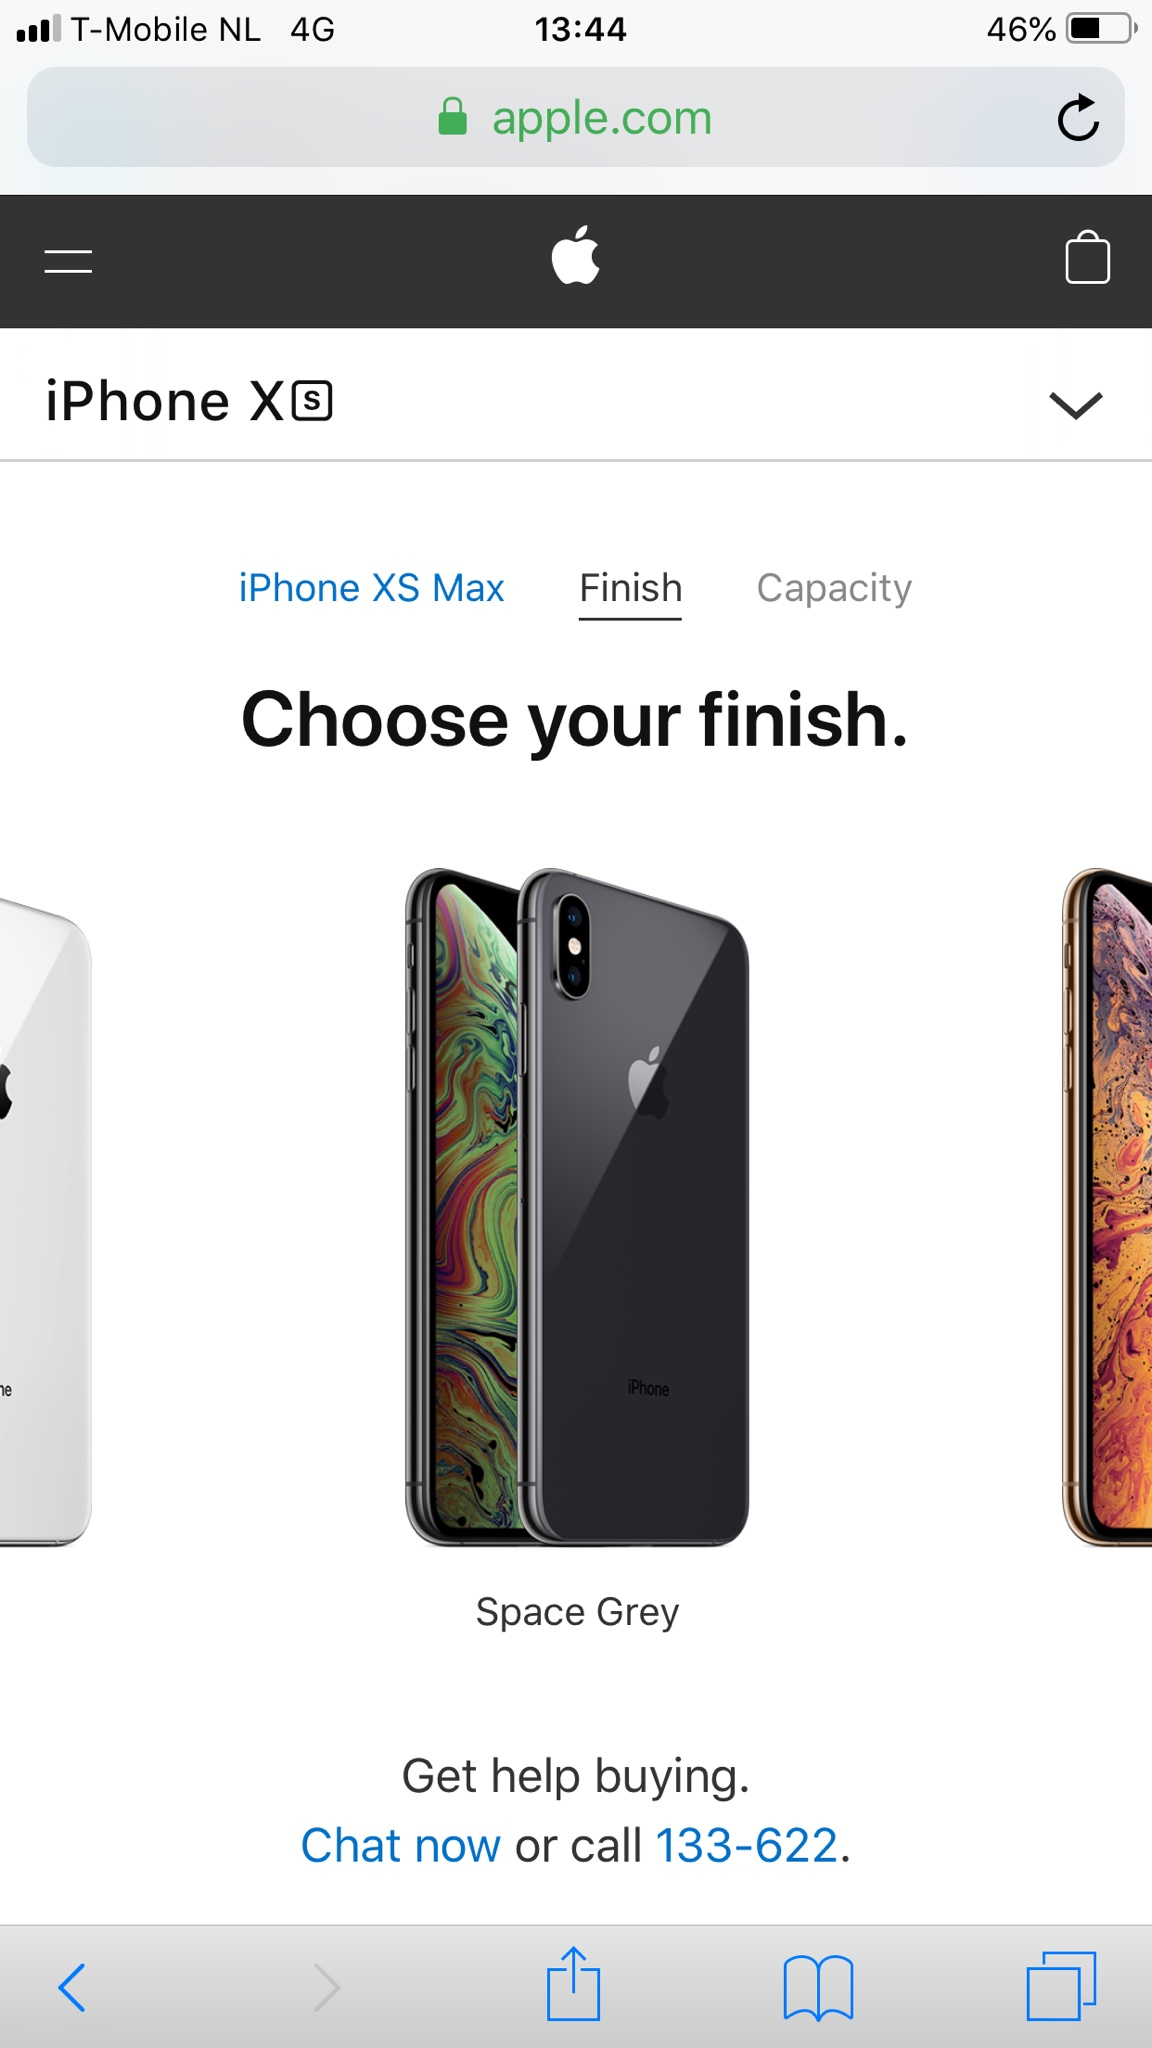 What Color Did You Get The Iphone Xs Max Or In Leviton Framed Toggle Singlepole Switch White Home Depot Canada And This Is